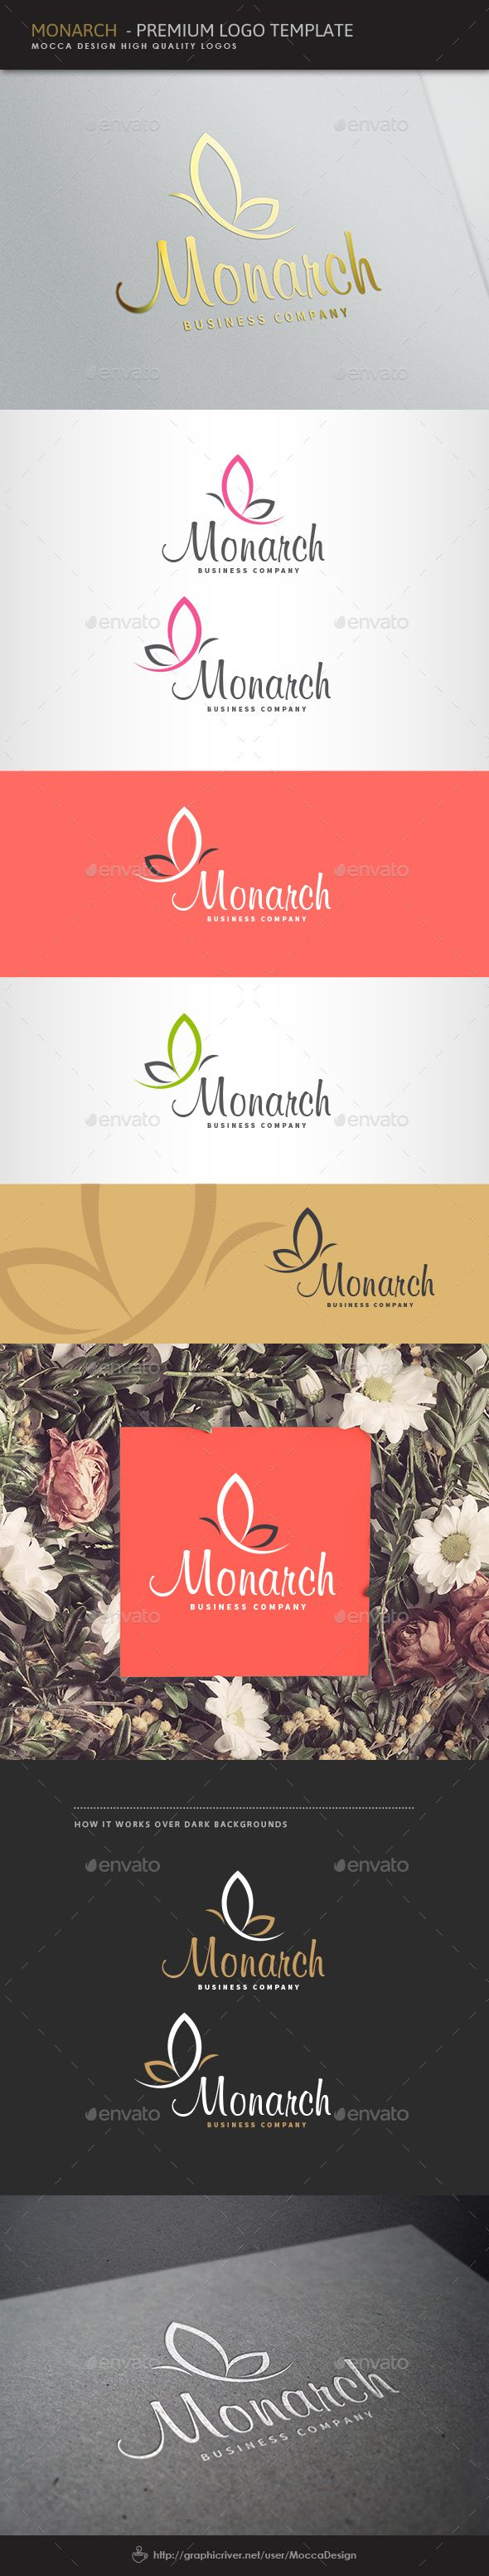 Logotype butterfly and letter b in different colour variants on a - Monarch Logo